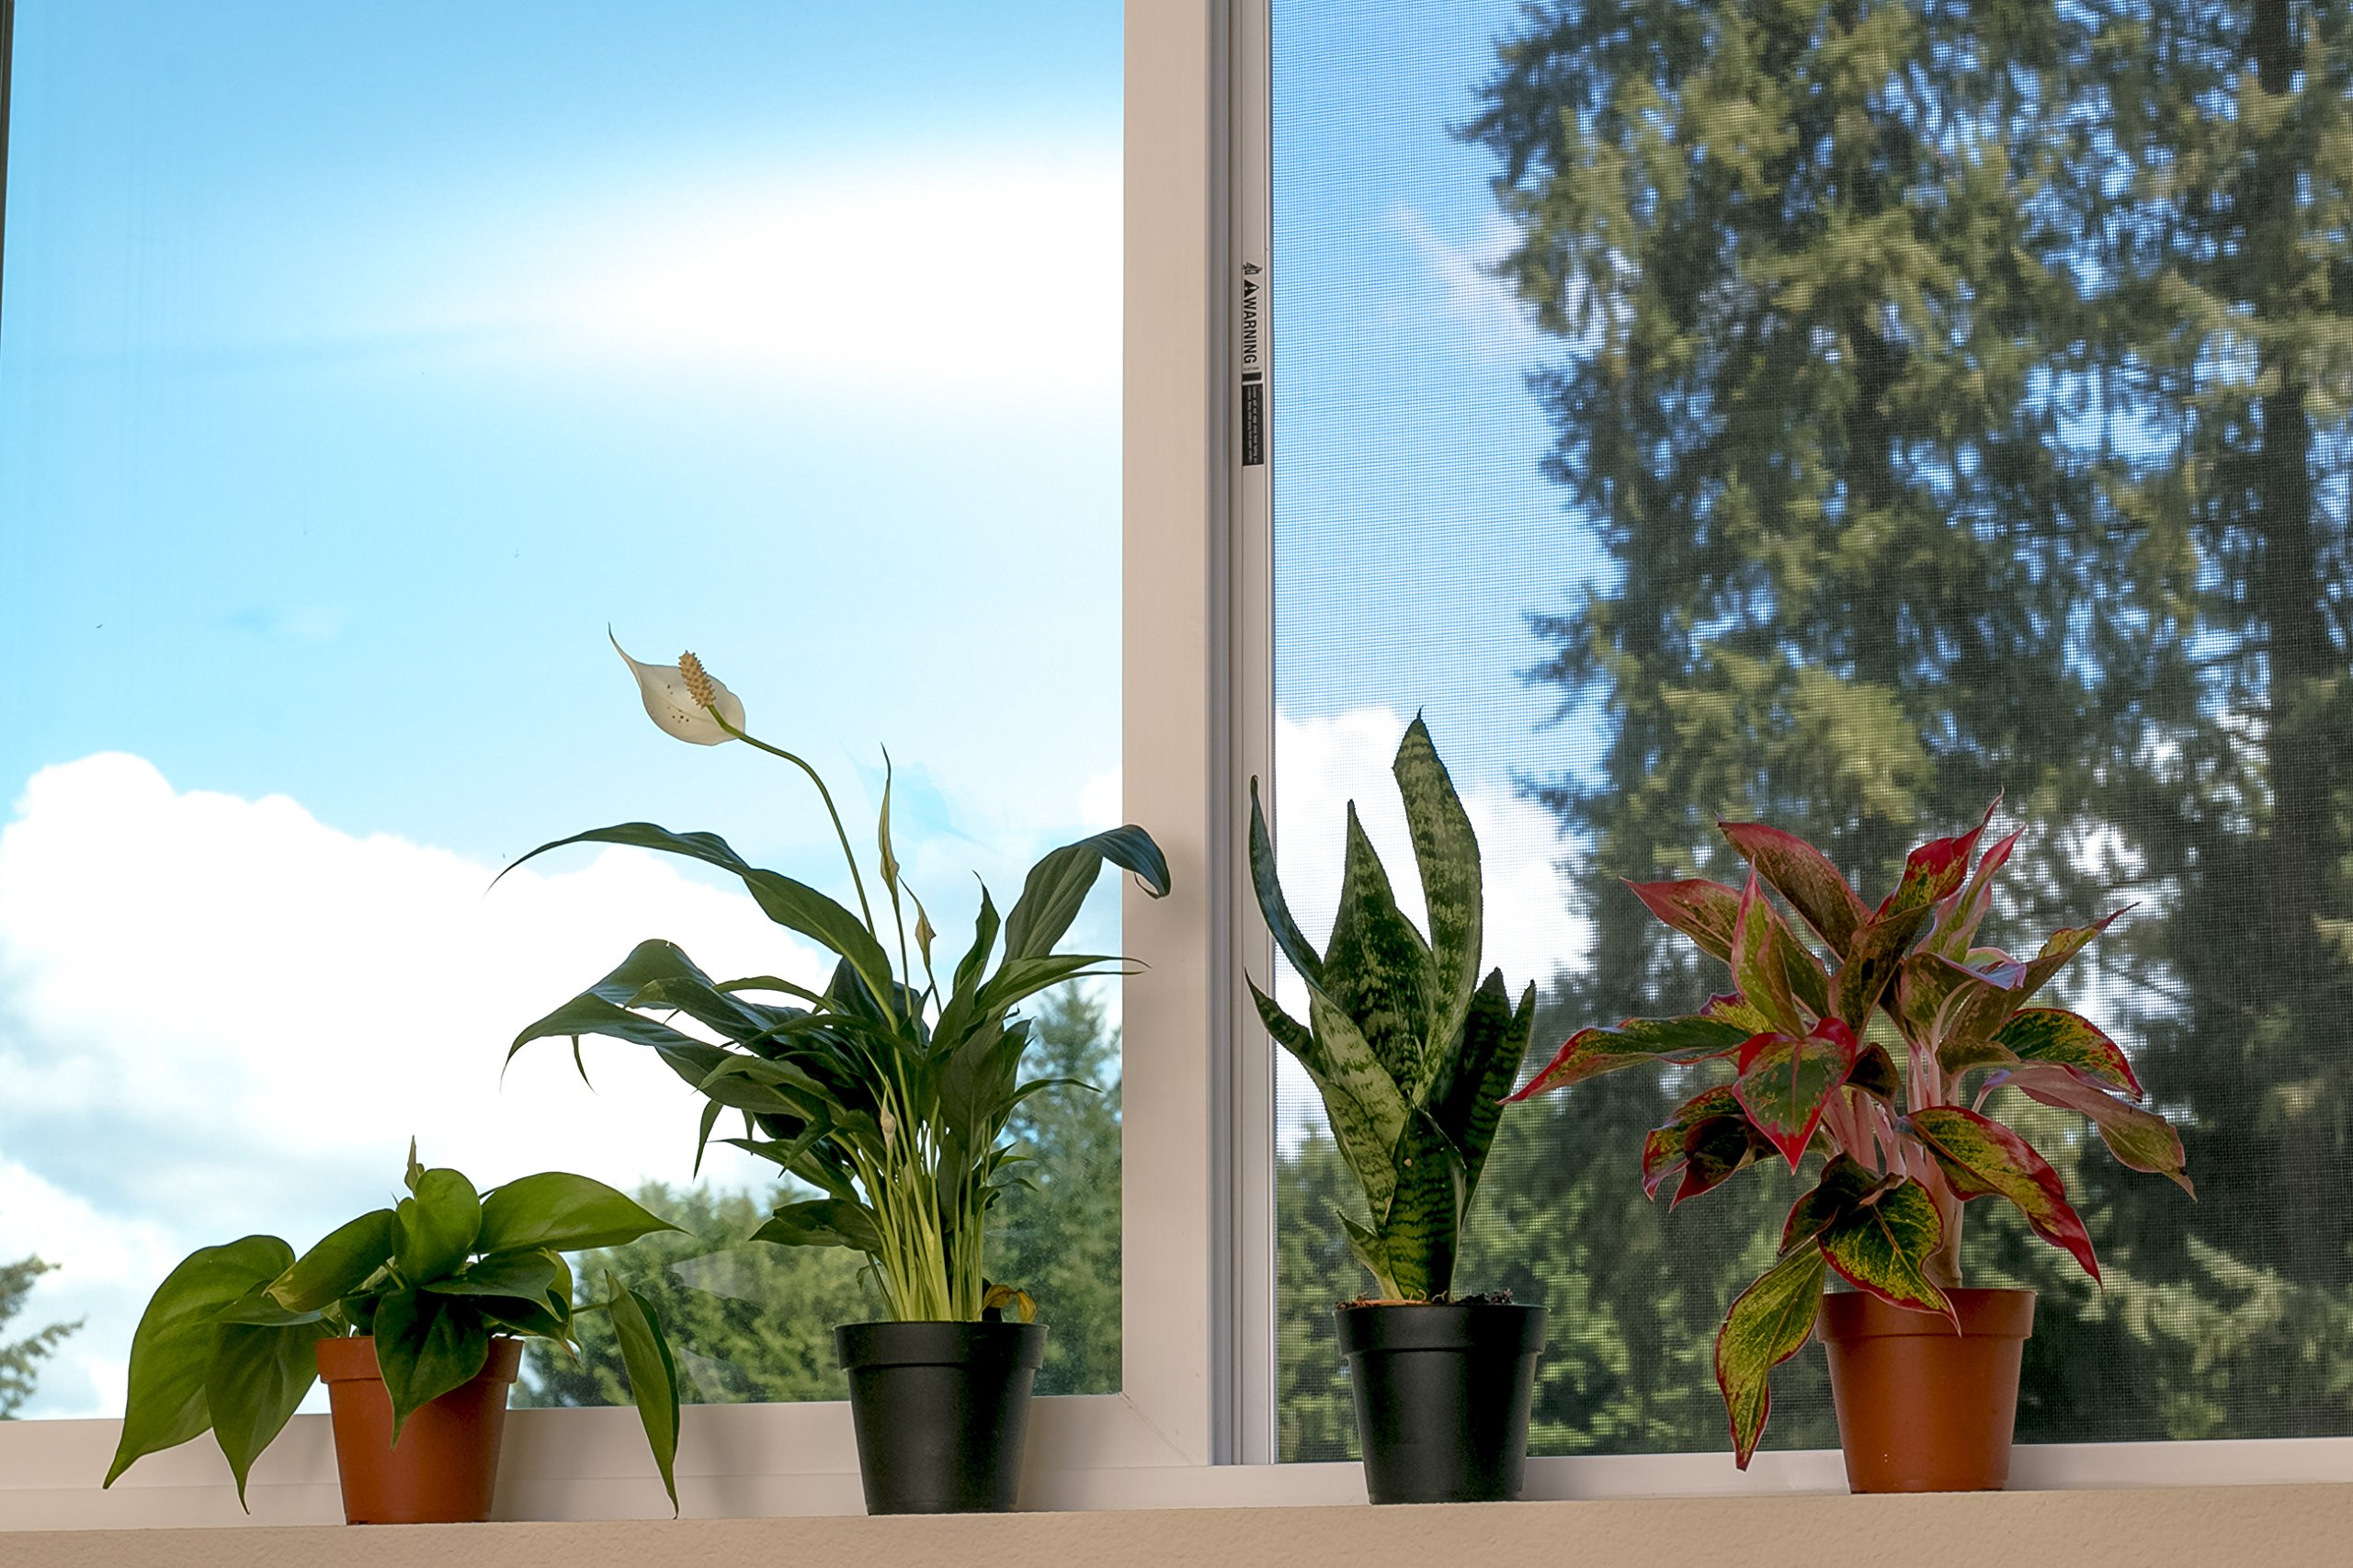 Set of 4 Indoor Plants - Live Potted Plants for Your Home or Office - Includes Red Aglaonema, Snake Plant, Philodendron, and Peace Lily - Great for Interior Decorating and Cleaning the Air by BDWS (Image #6)